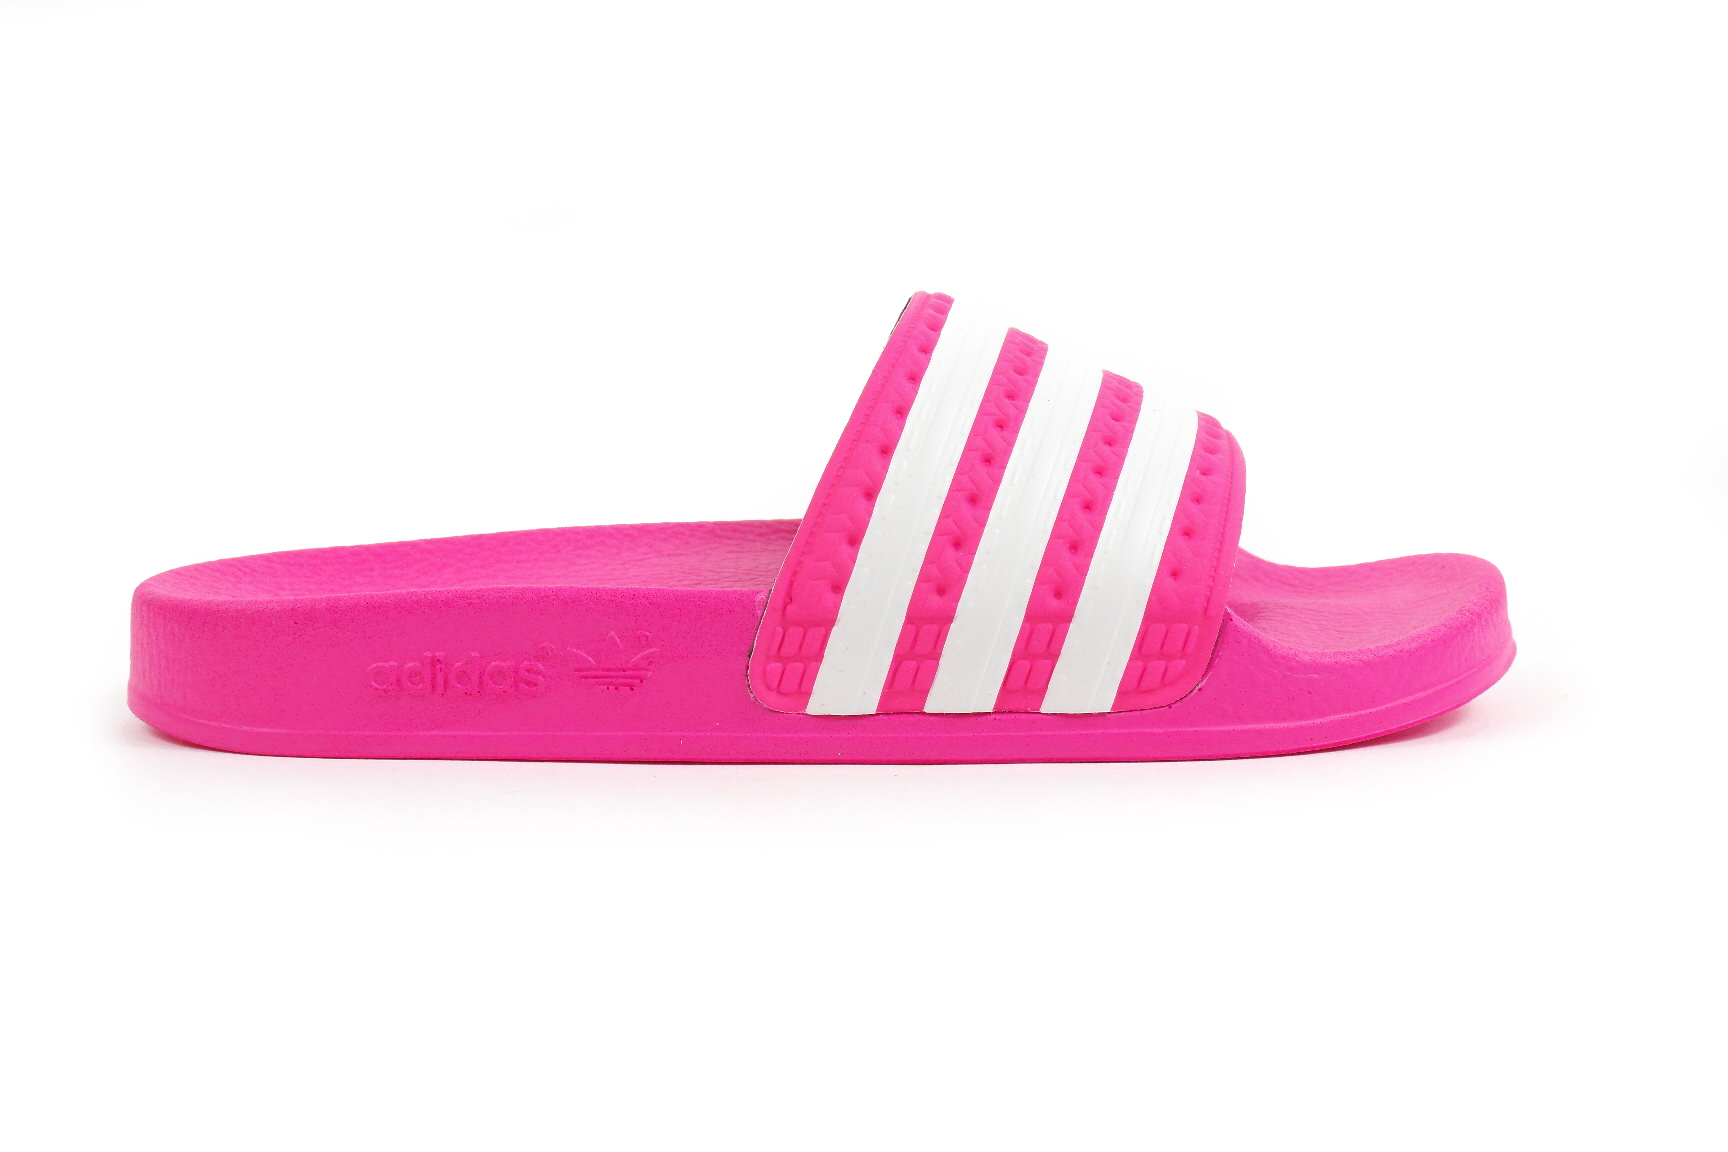 Adidas Slippers Roze